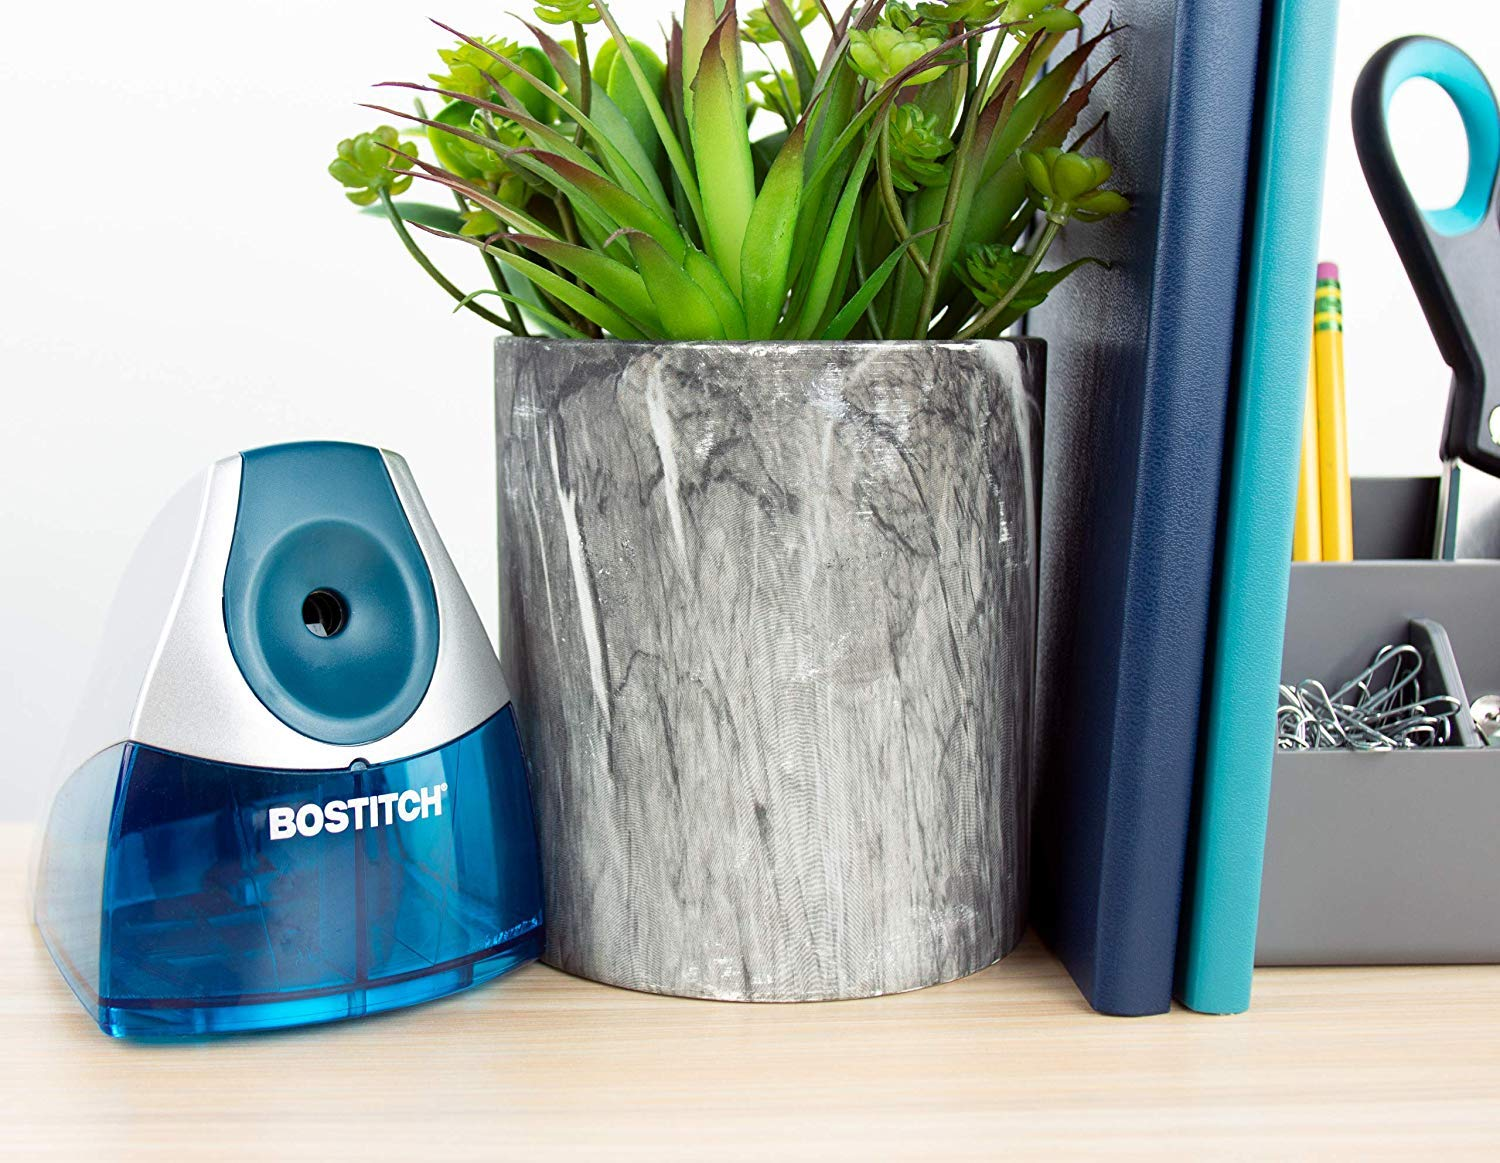 Bostitch Personal Electric Pencil Sharpener, Blue (EPS4-BLUE) - 5 Pack by Bostitch Office (Image #6)